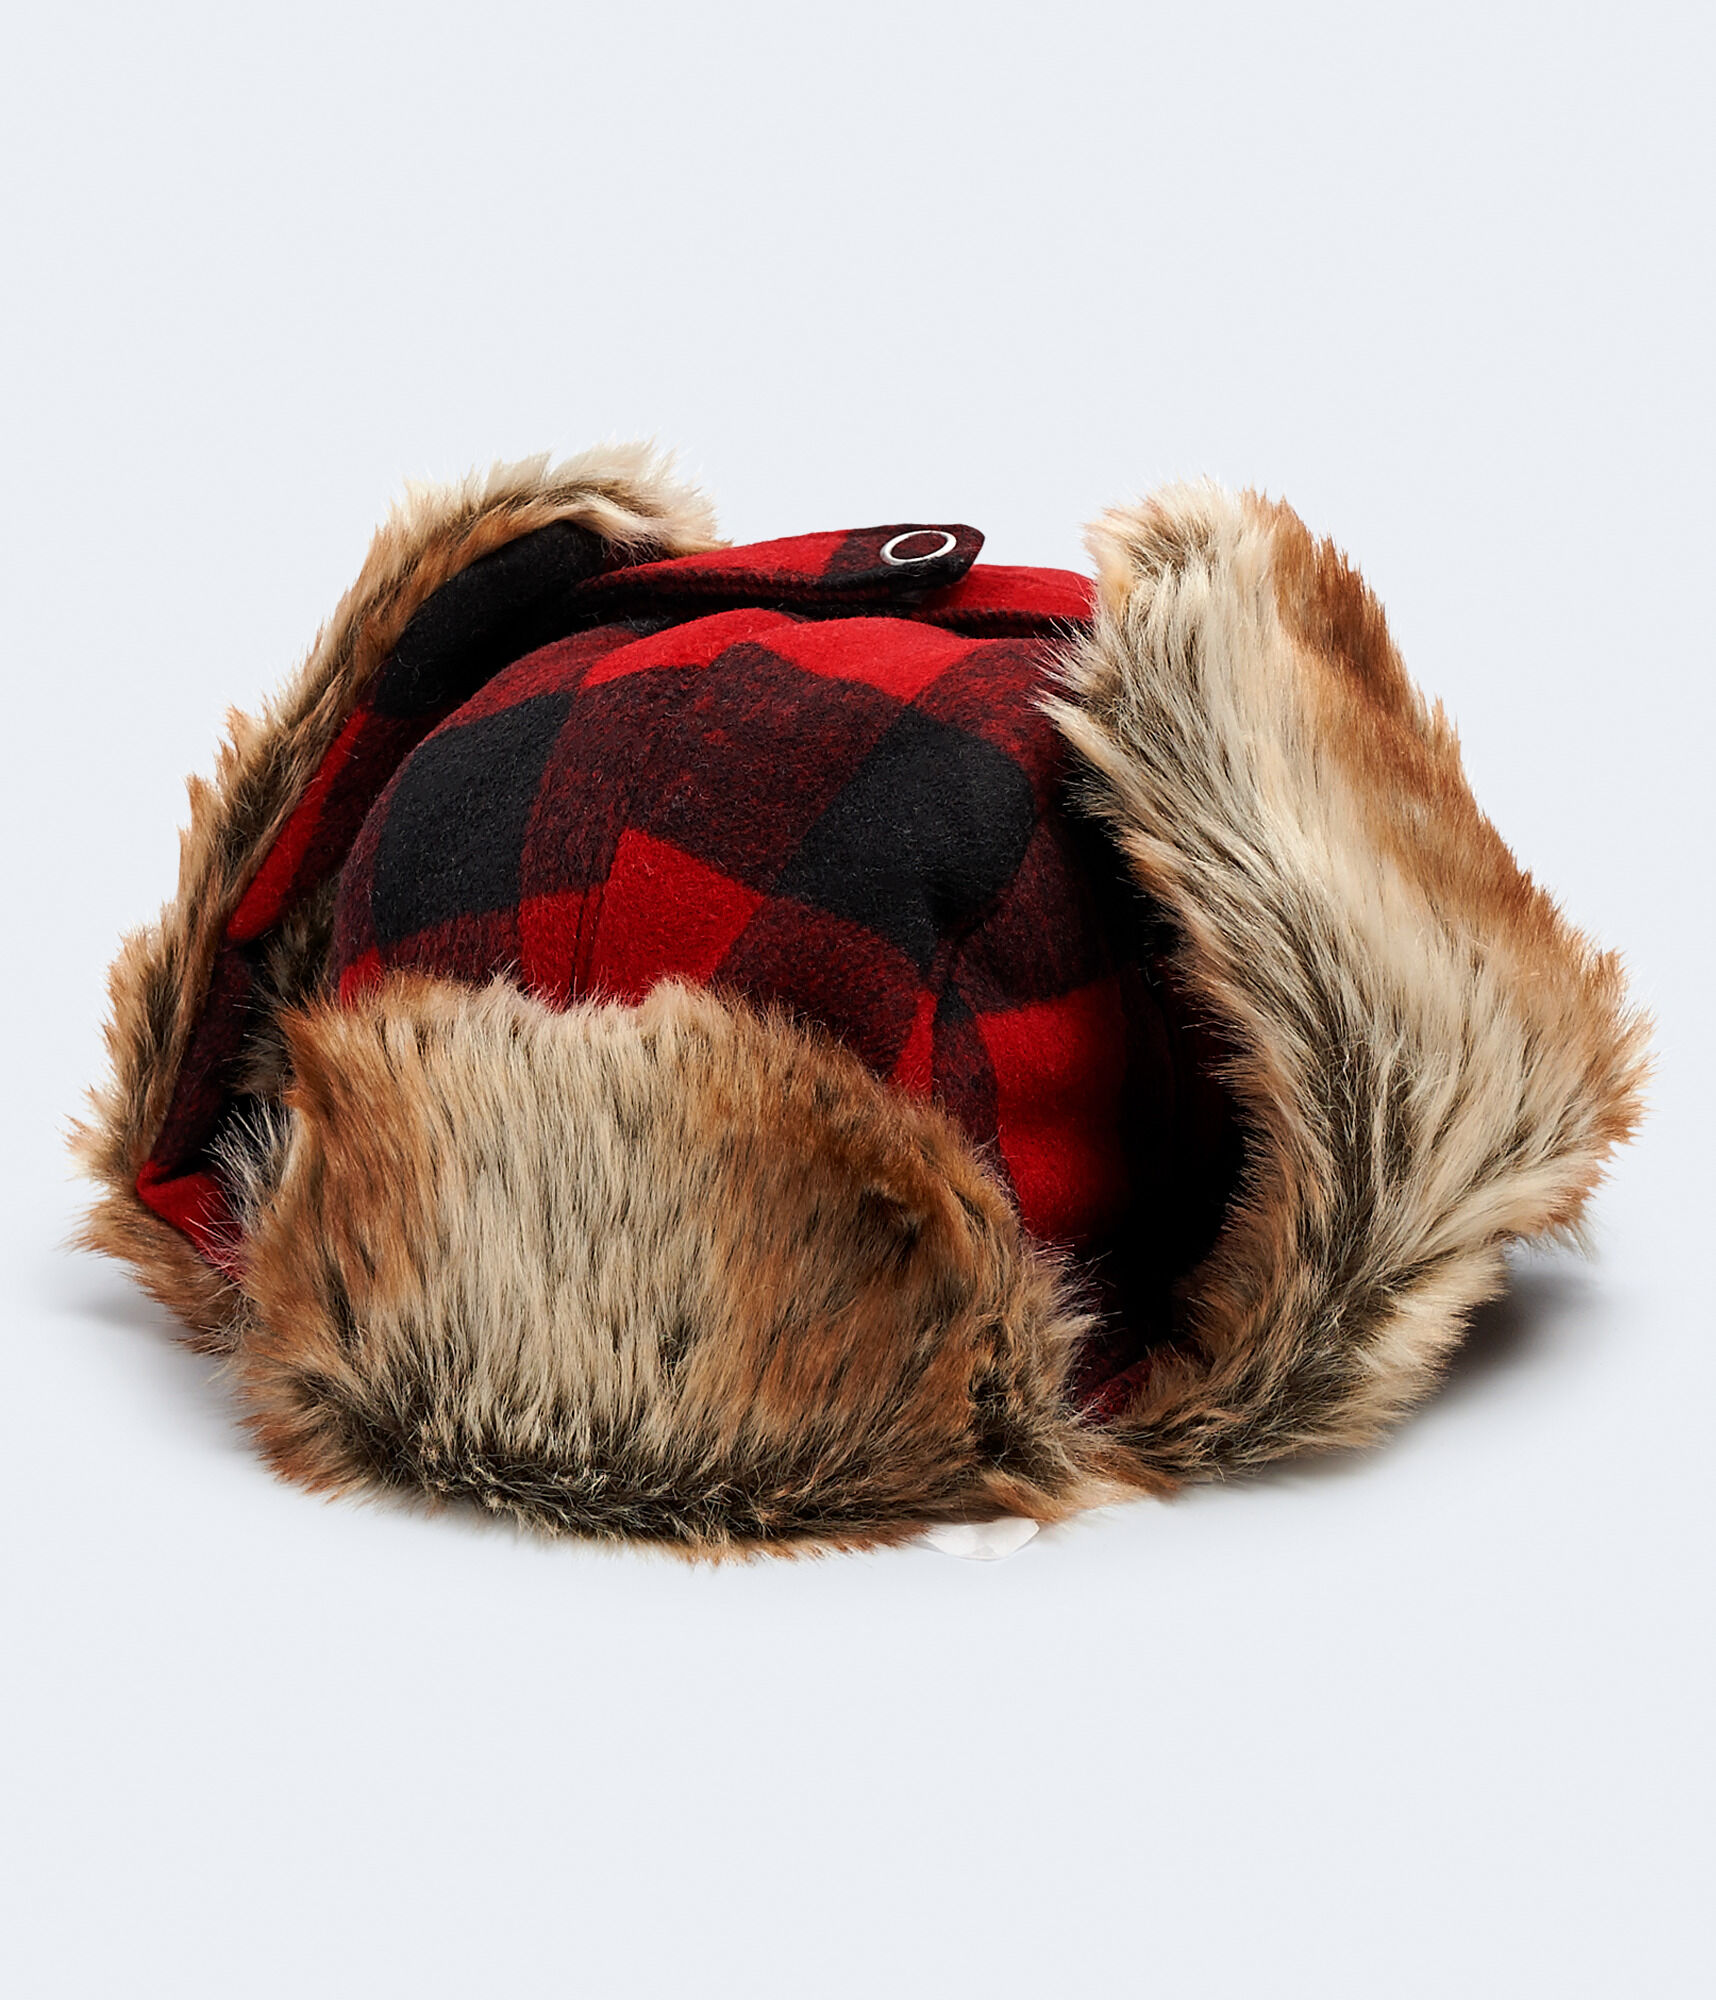 275d18912a9 Buffalo Plaid Trapper Hat